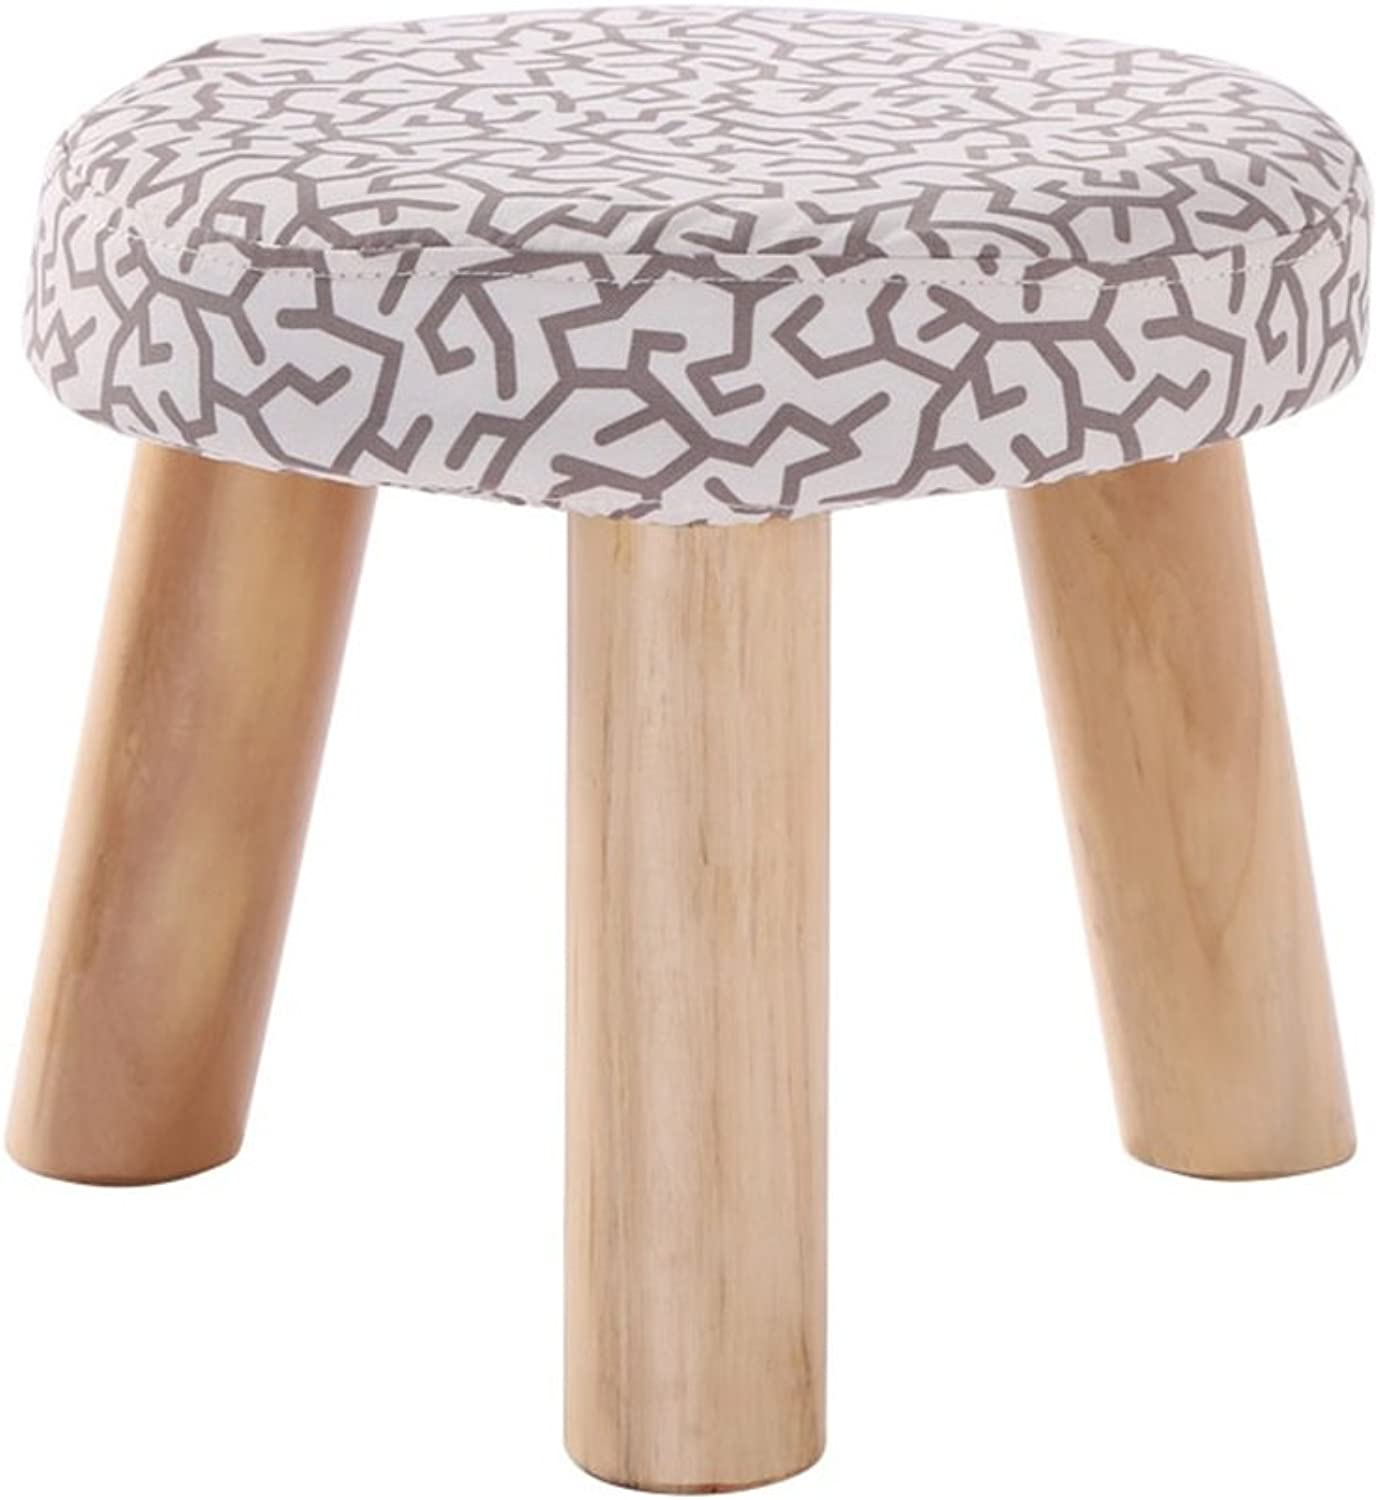 Fashion Solid Wood shoes Stool 3 Legs Round Upholstered Footstool Sofa Low Stool Footrest 28x28x25cm